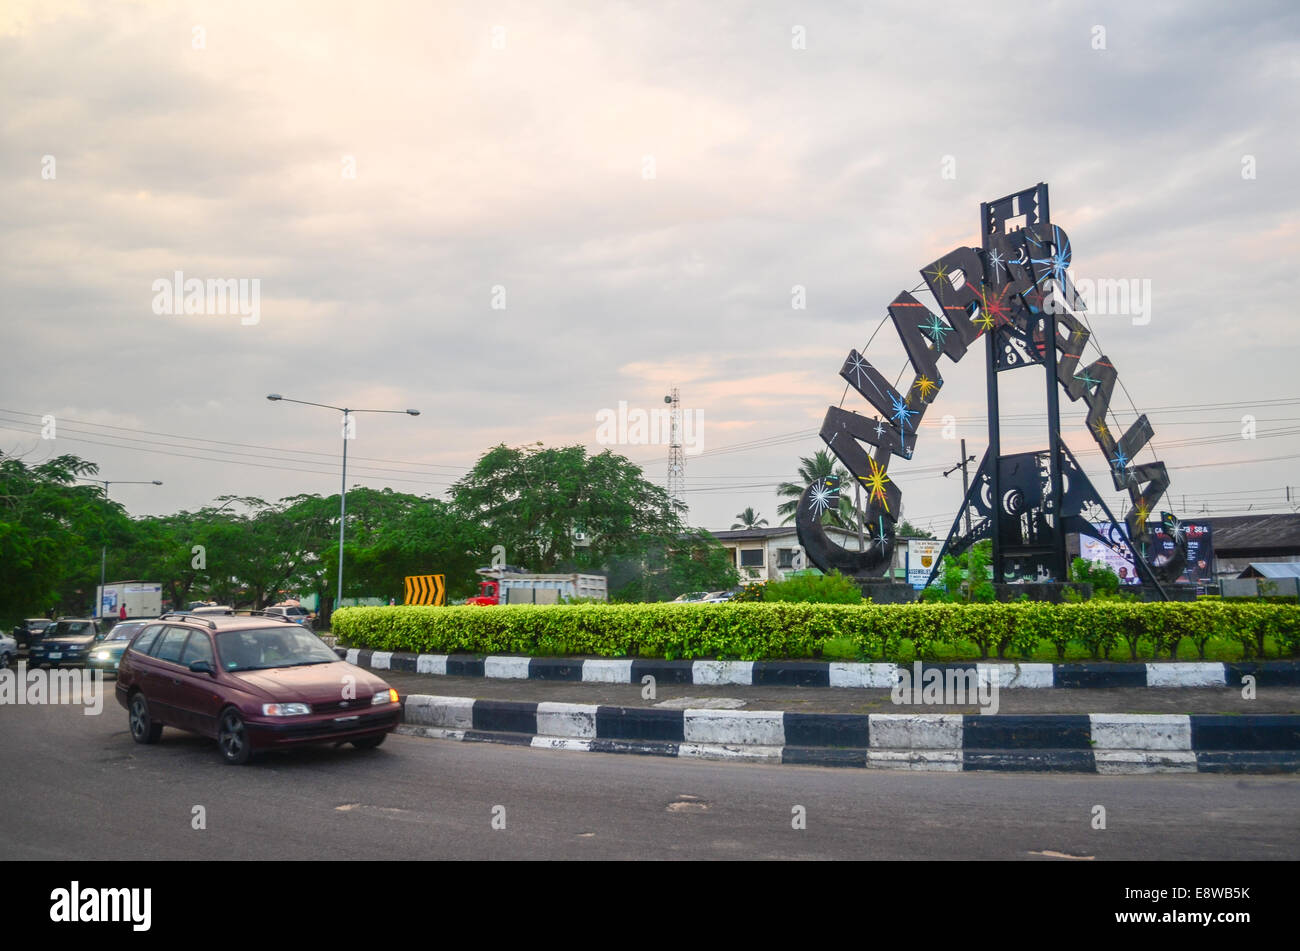 Entrance sign and roundabout of the city of Calabar, Nigeria - Stock Image